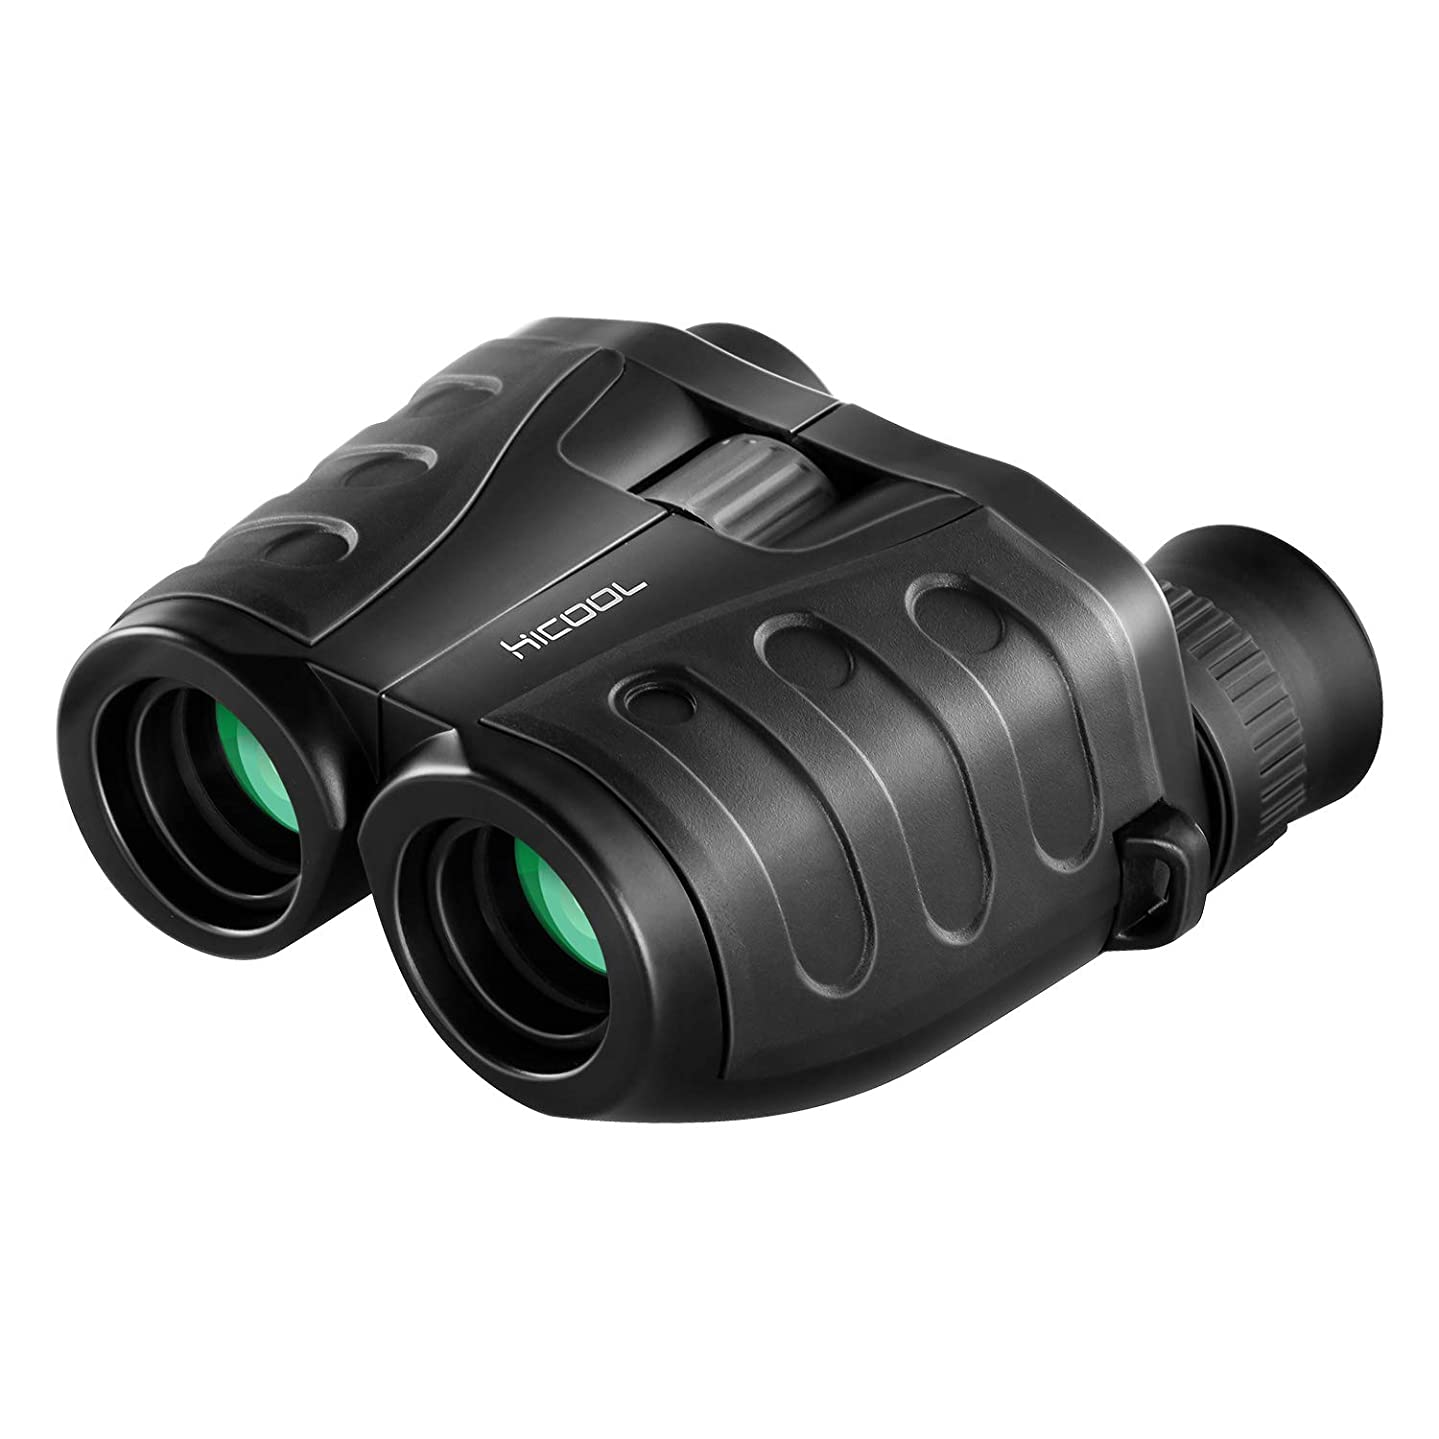 Compact Binoculars, 10x25 Folding High Powered Binoculars with Weak Light Night Vision Clear Bird Watching/Outdoor Sports Games/Concerts (Black)